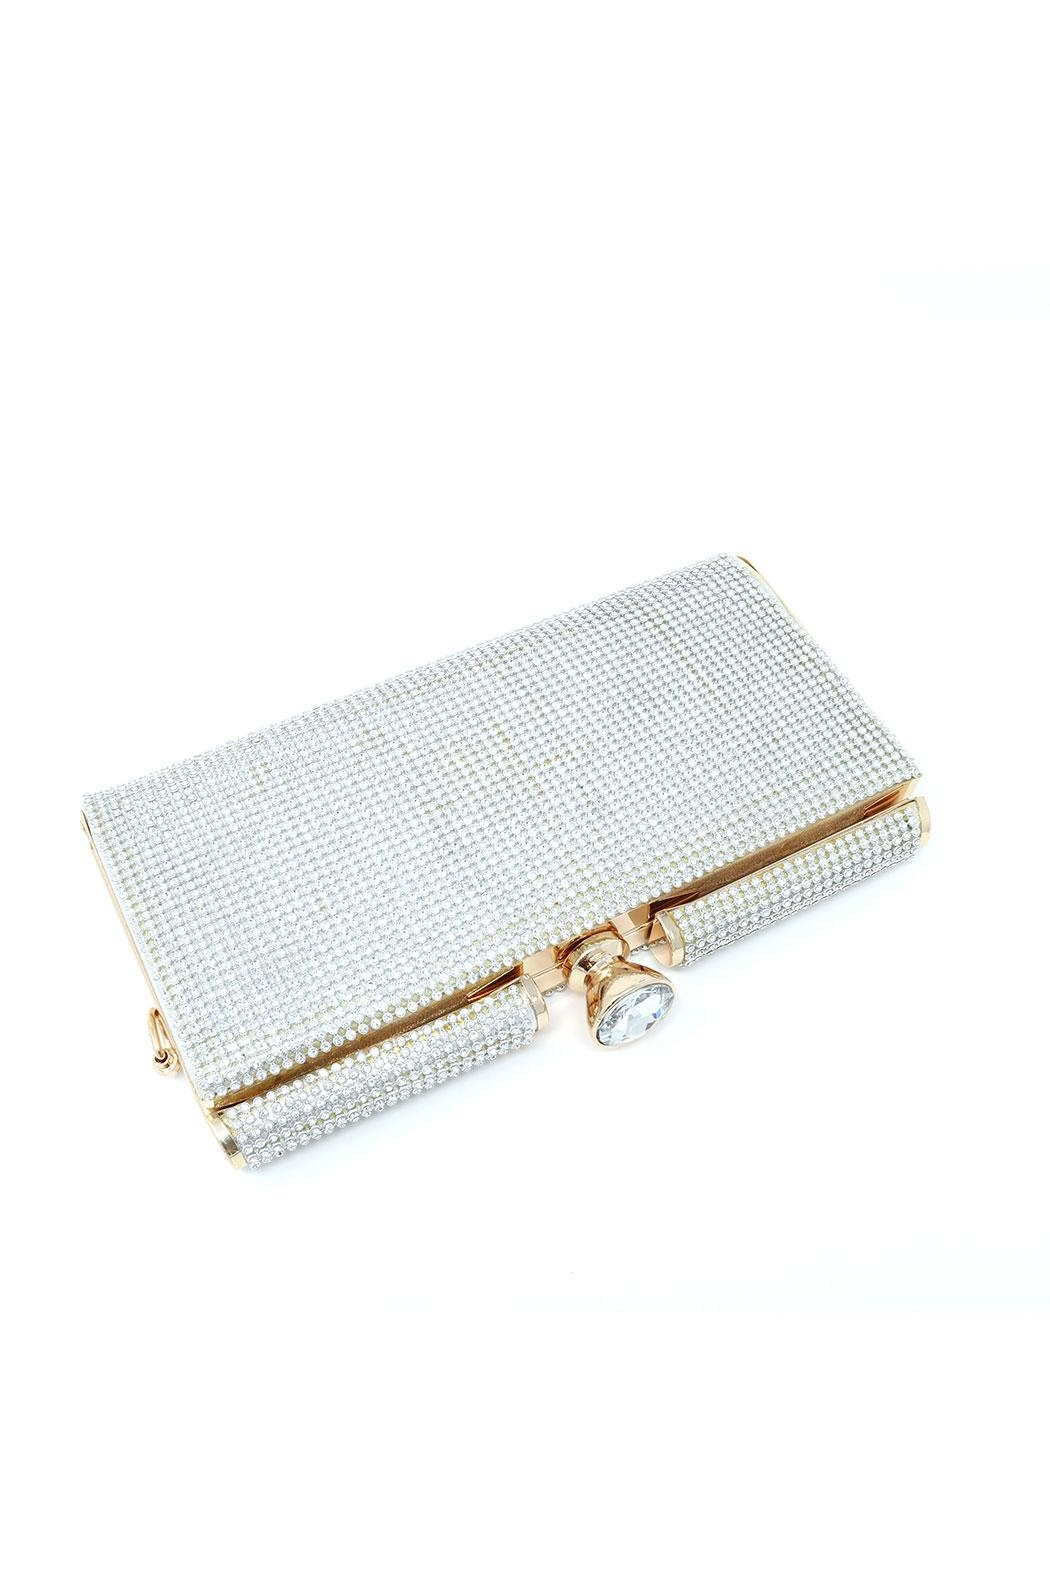 Nadya's Closet Crystal Evening Bag - Front Cropped Image